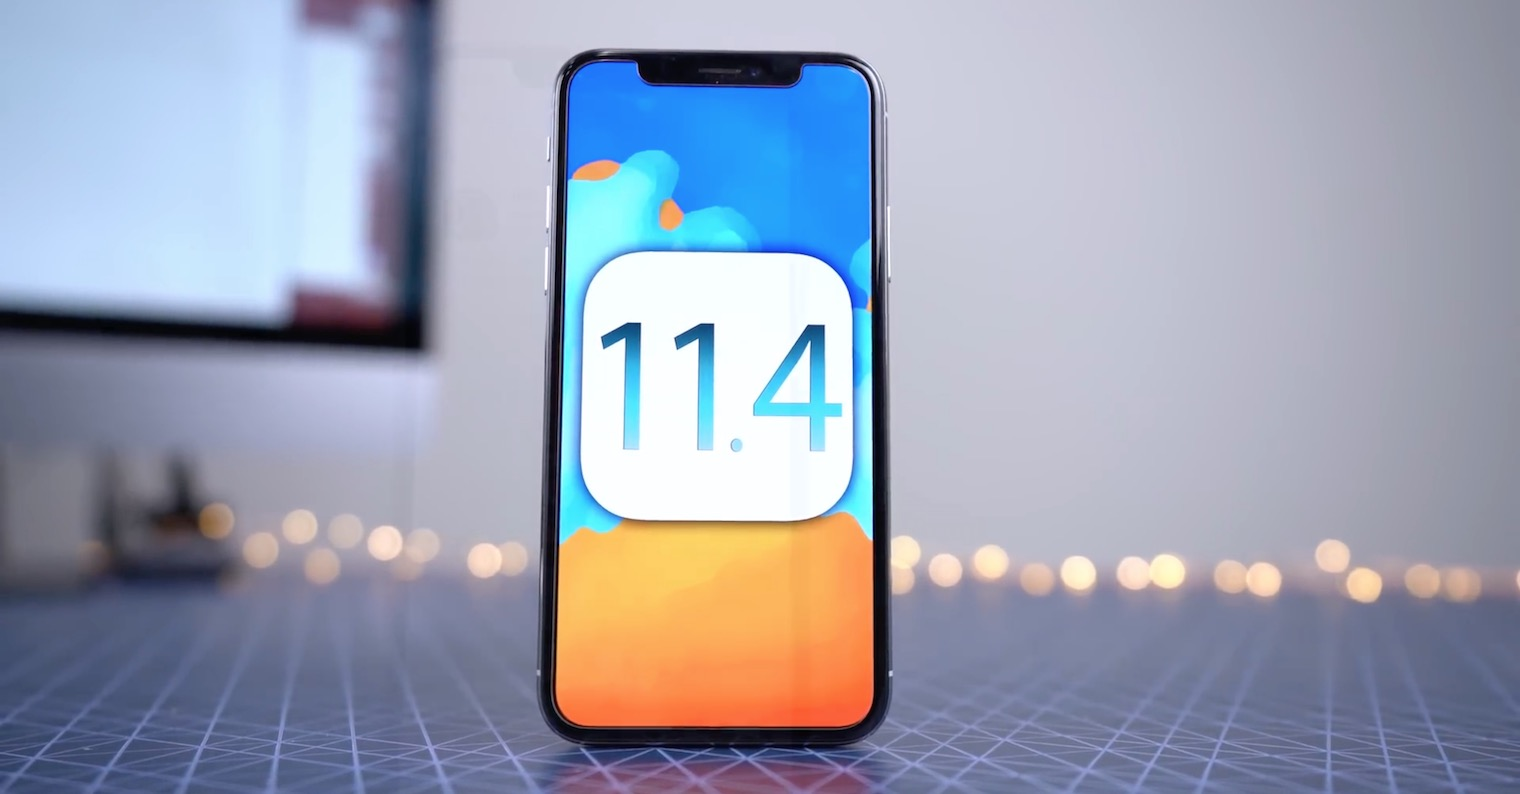 iOS 11.4 Final is Available for iPhone and iPad, Download Now